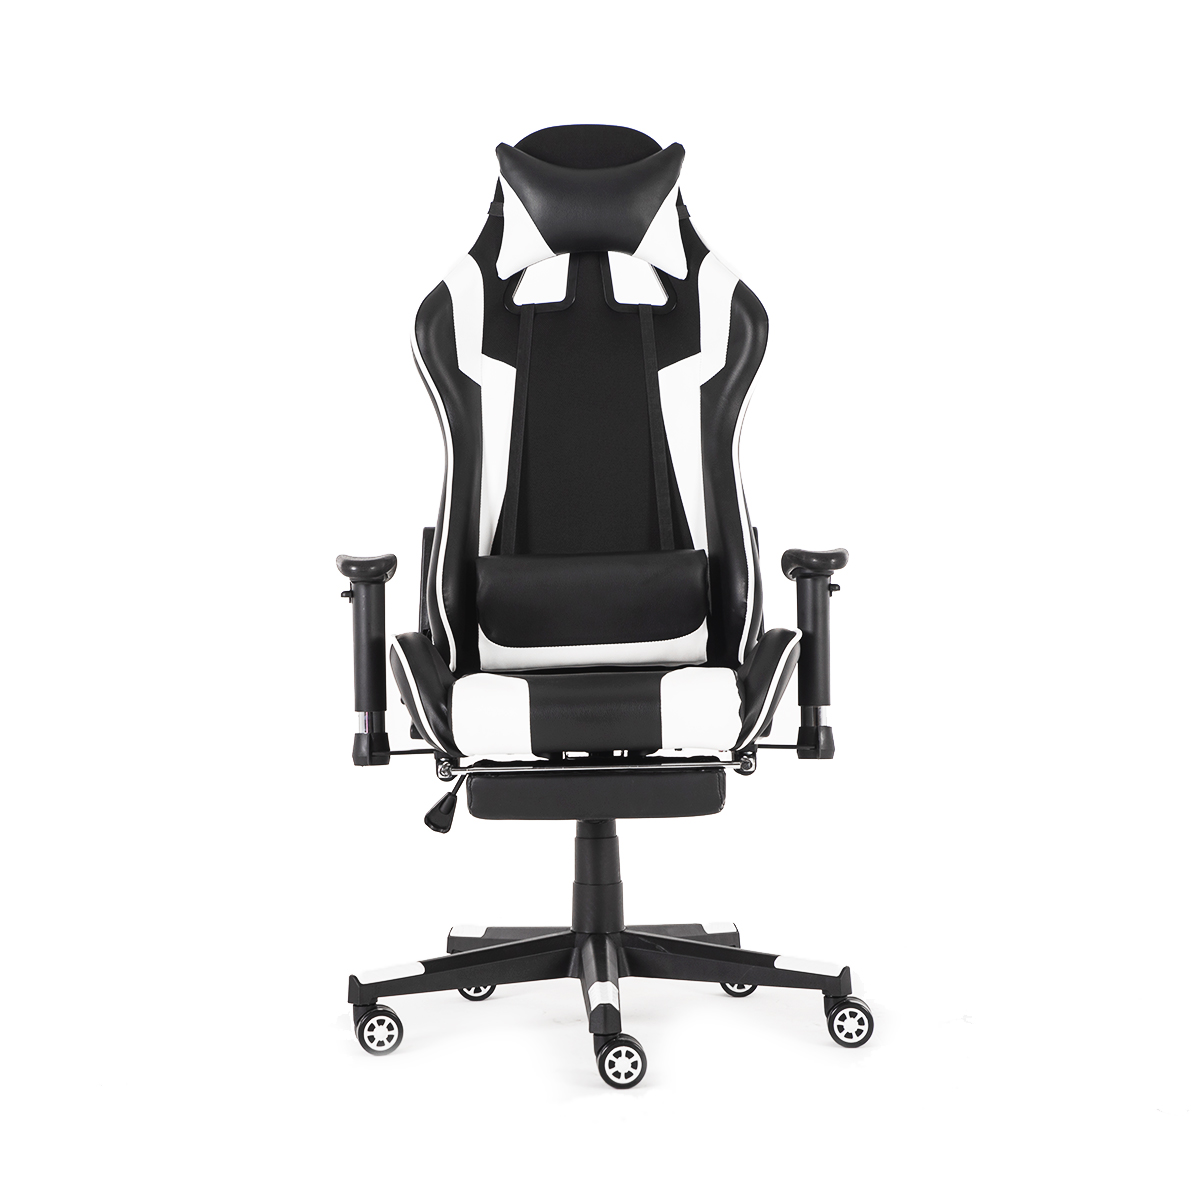 180° Lying Gaming Chair Electrified Internet Cafe Armchair High Back Computer Office Furniture Executive Desk Chairs Recliner